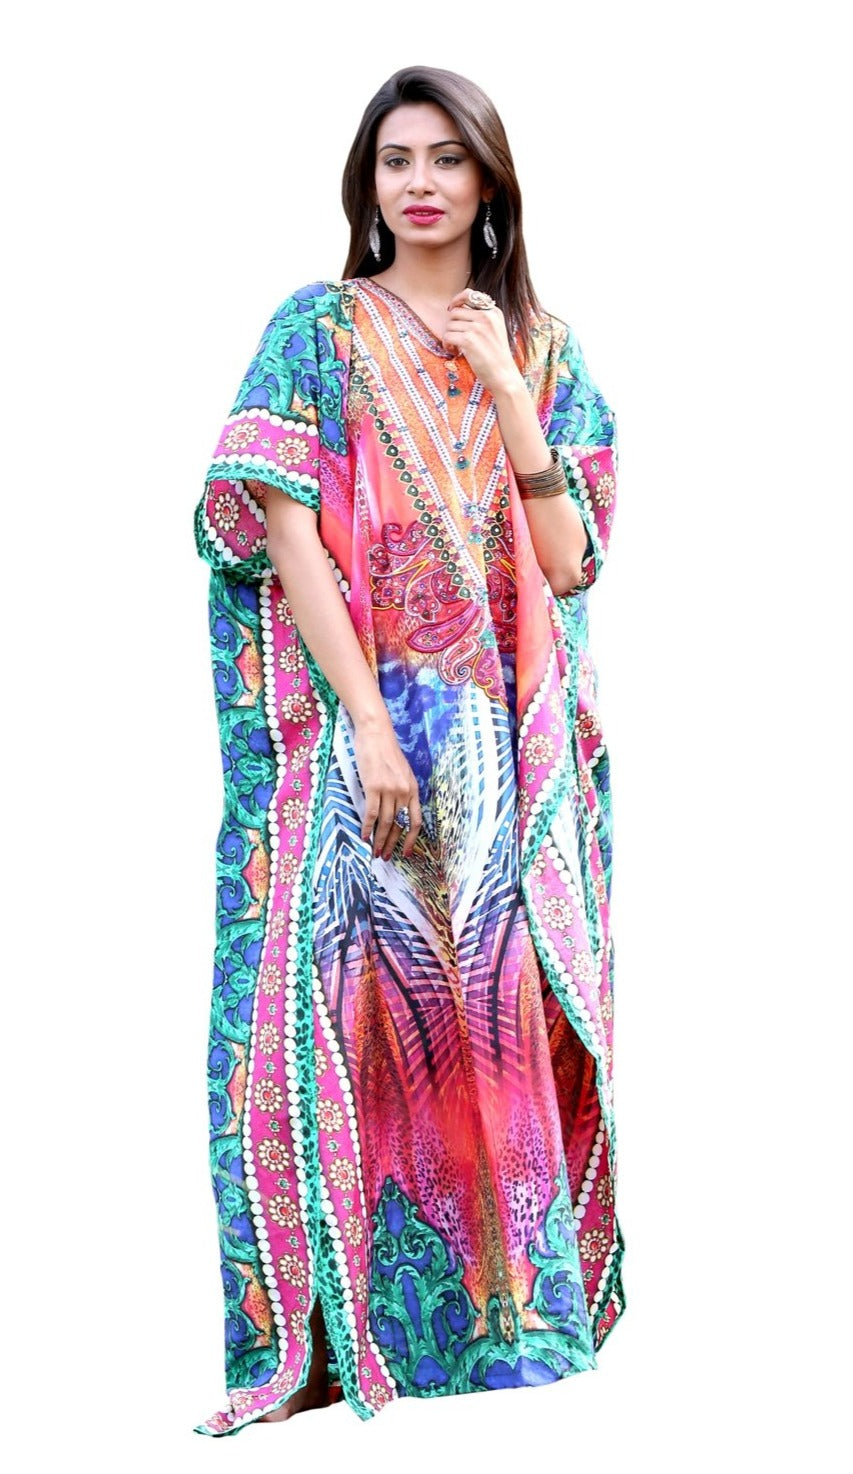 Free-flowing Silk Kaftan Dress with Ornamental Neckline and Tropical Tribal Print women's clothing - Silk kaftan